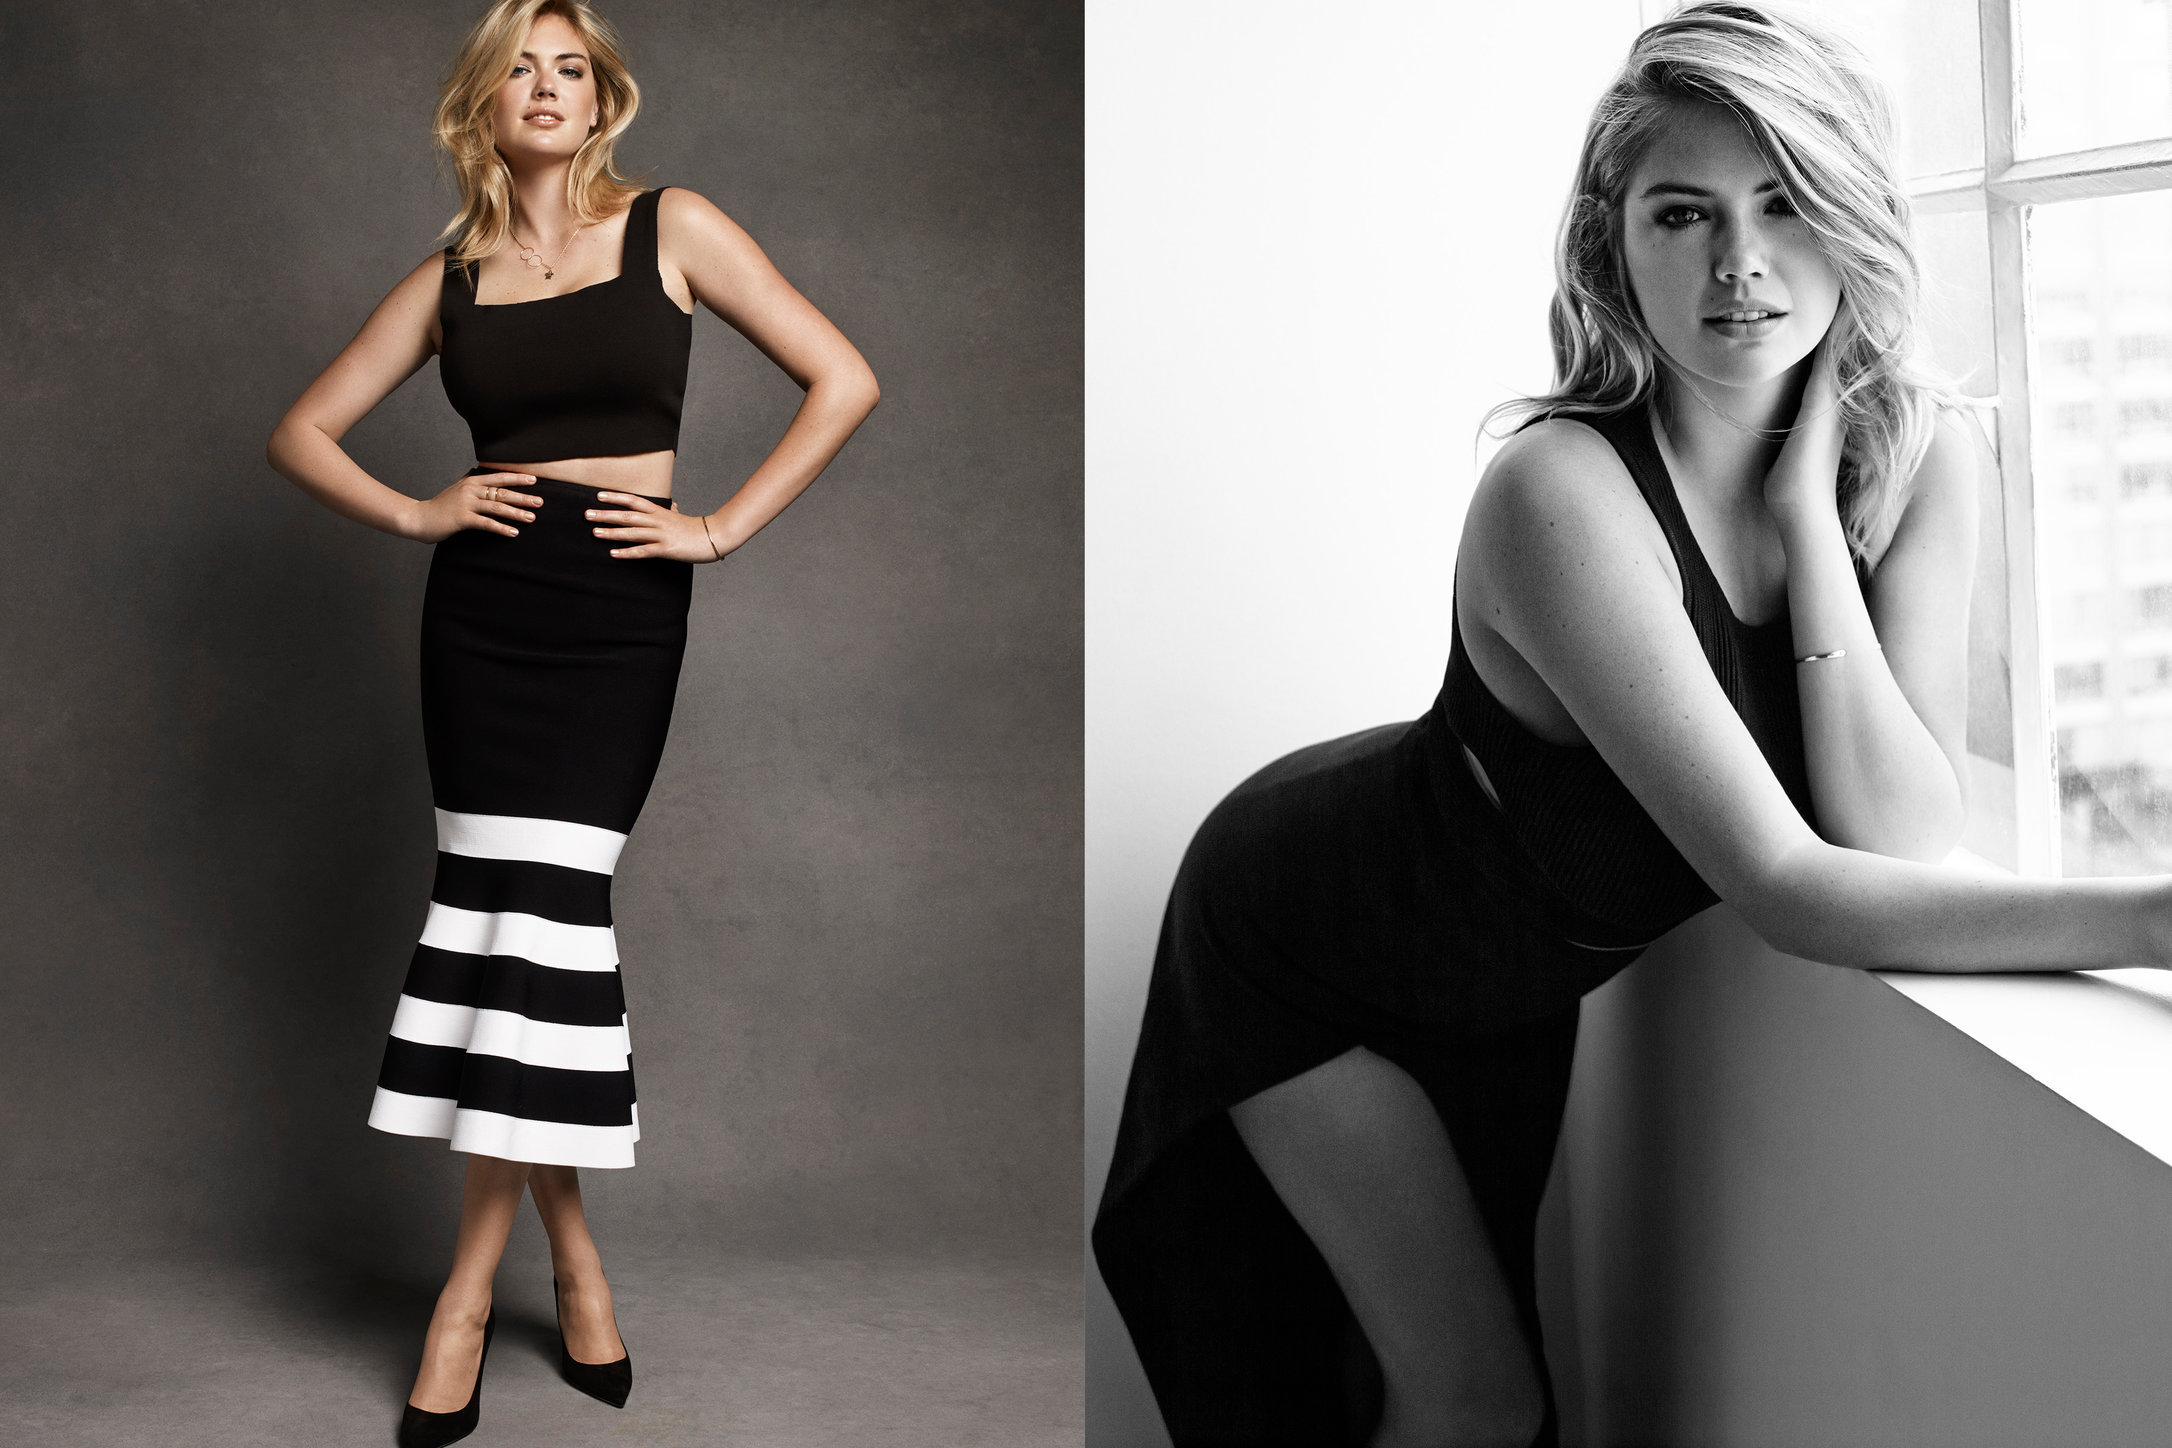 TheEDIT. Kate Upton. March, 2015.